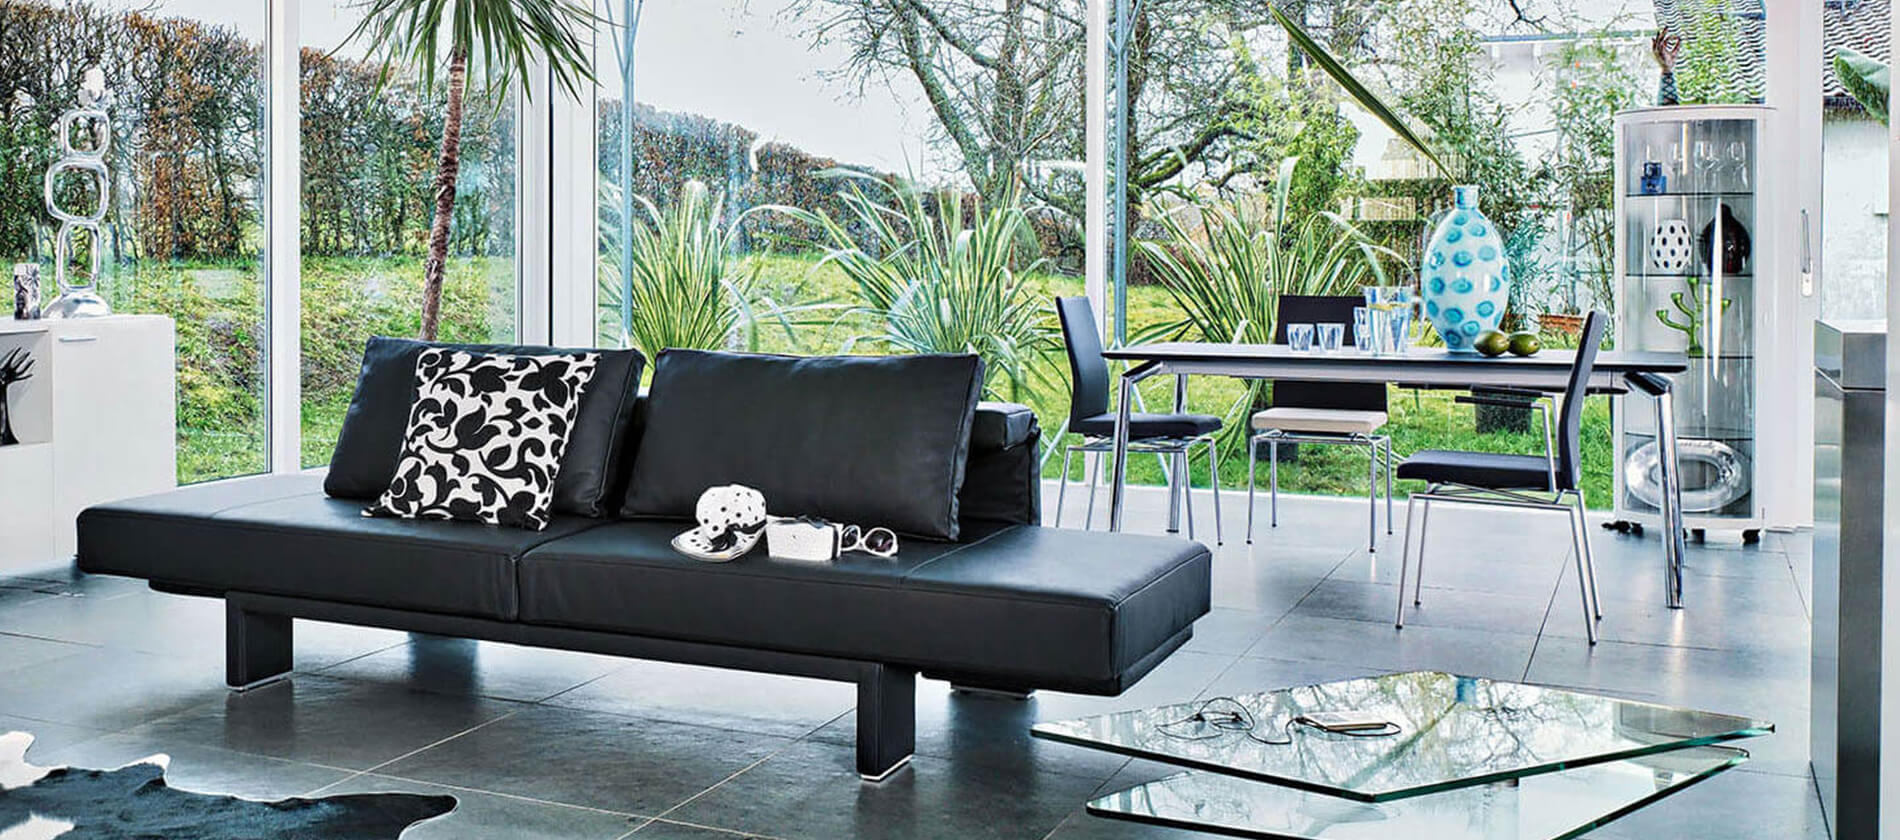 schlafsofa scene von franz fertig sofa mit funktion hier. Black Bedroom Furniture Sets. Home Design Ideas